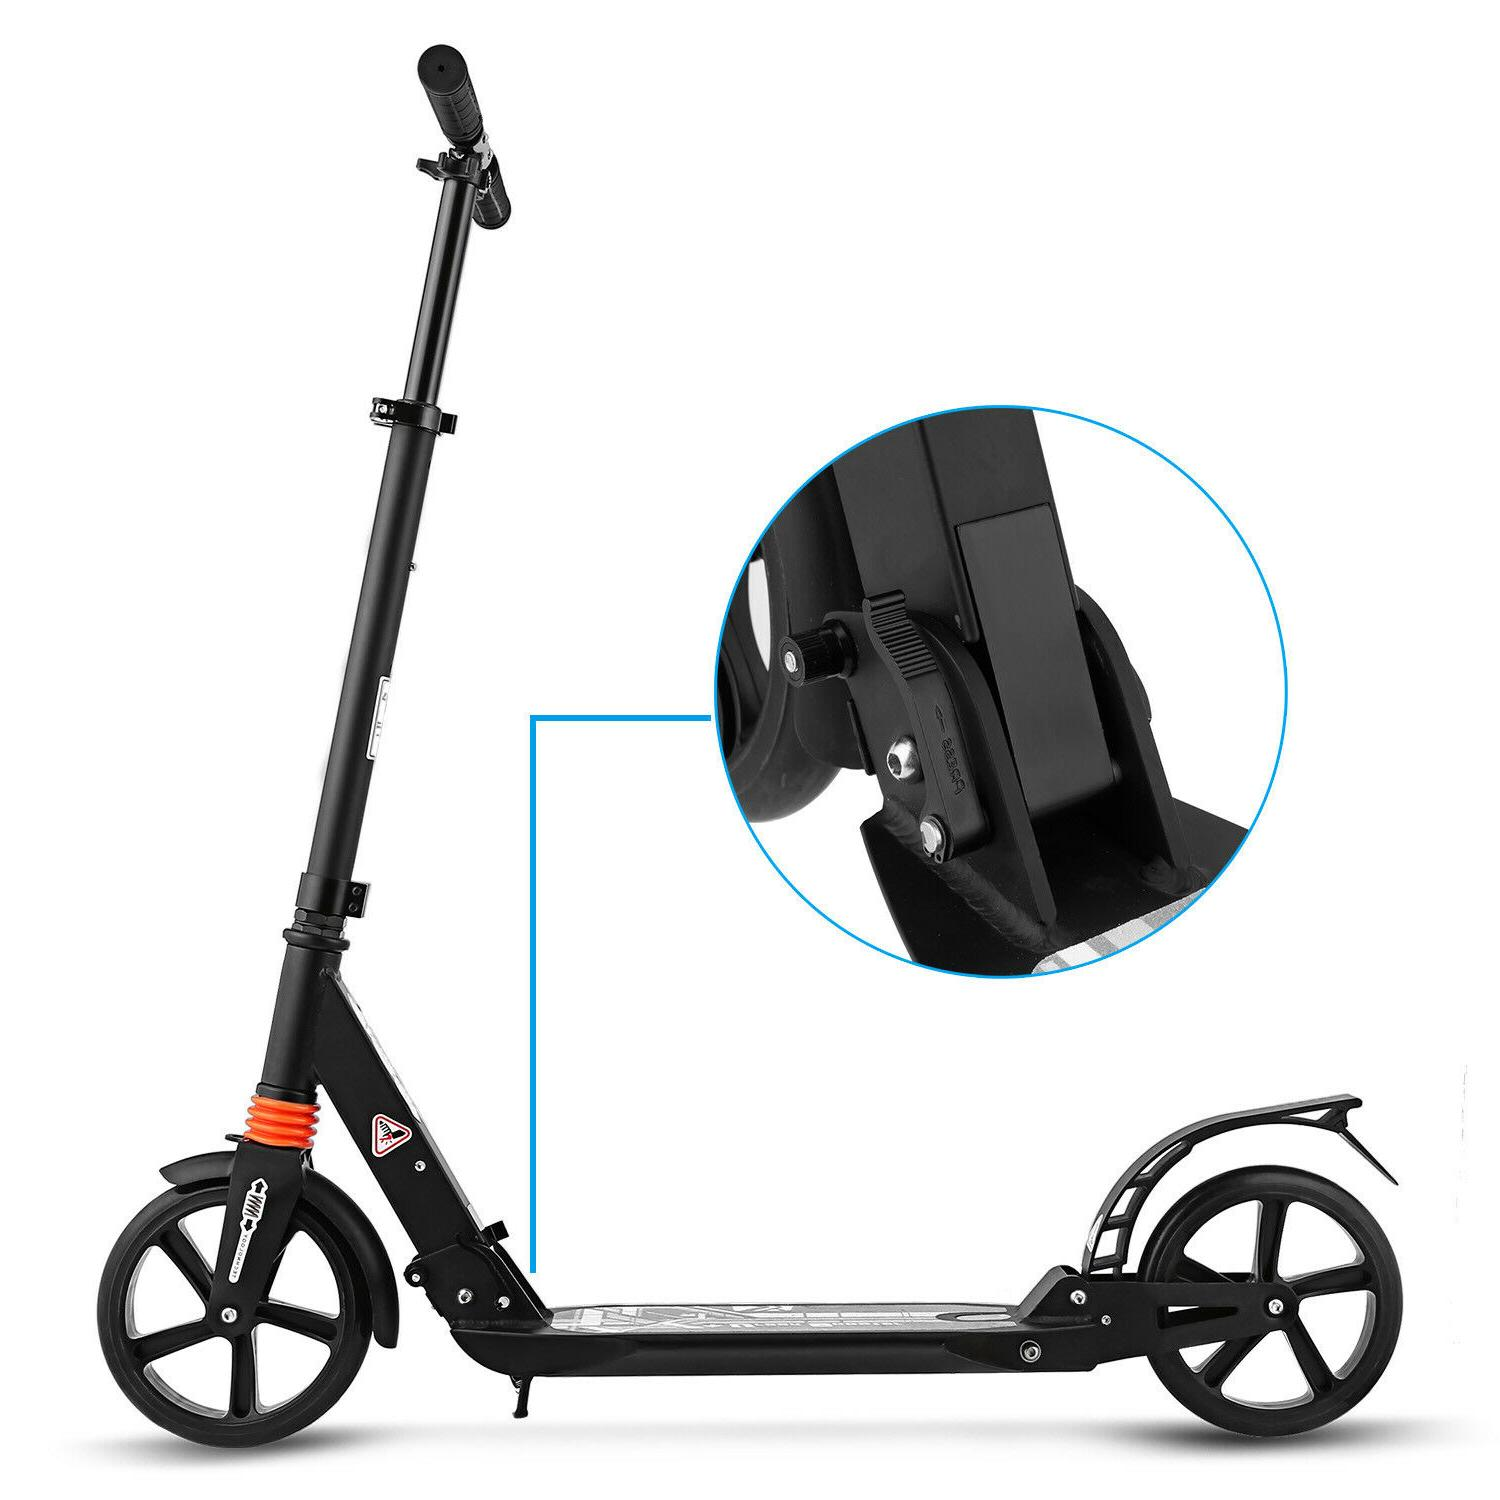 Ancheer Kick Scooter T-Style Black